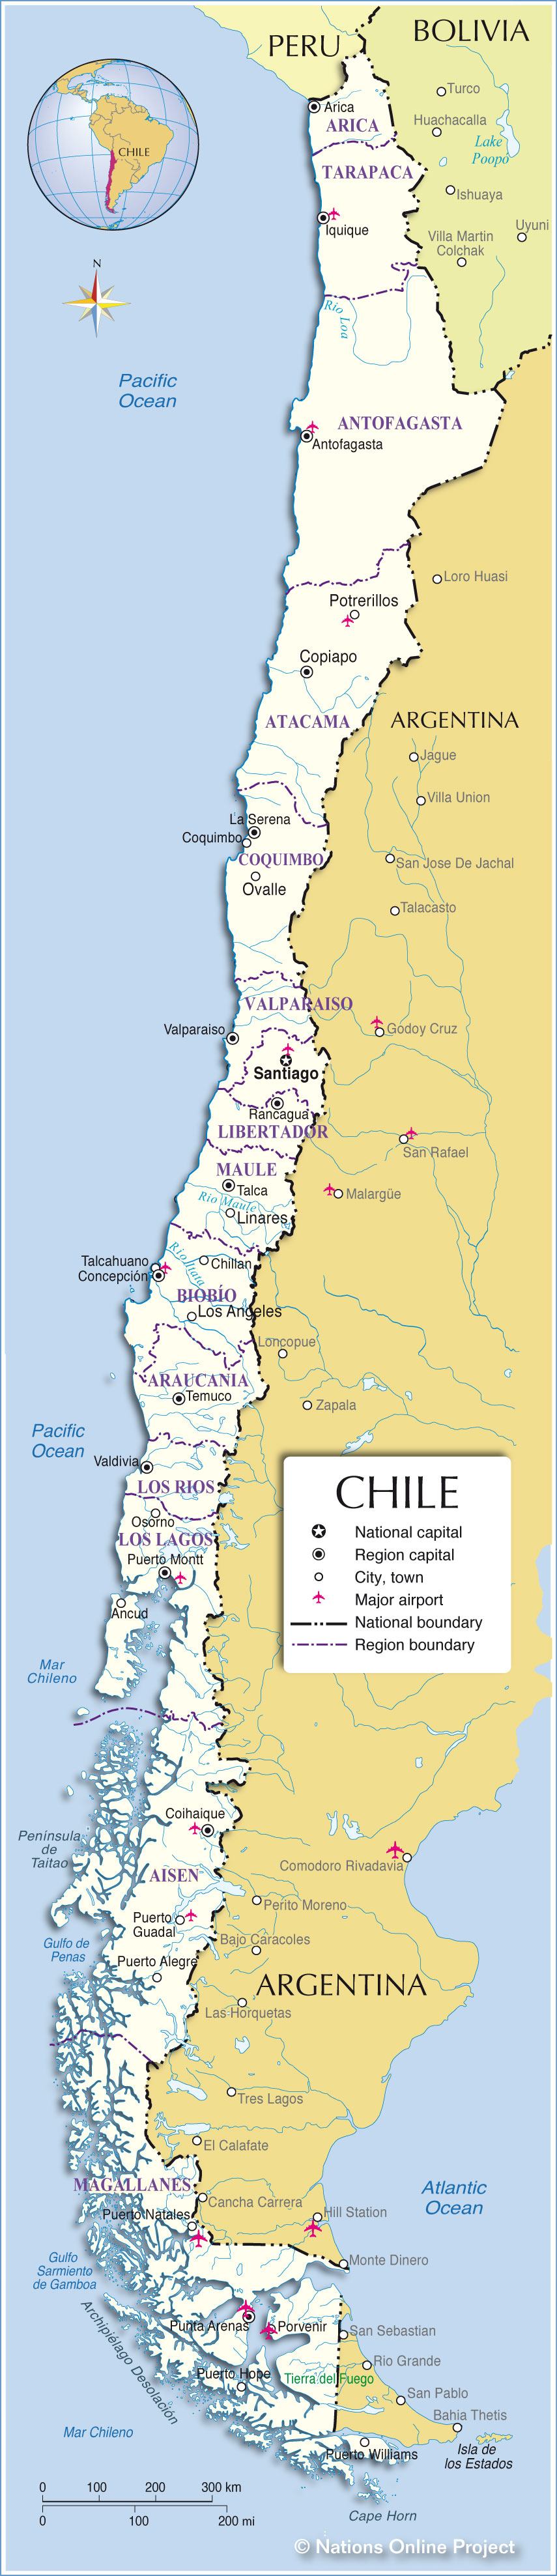 Maps Country Colombia Key Map